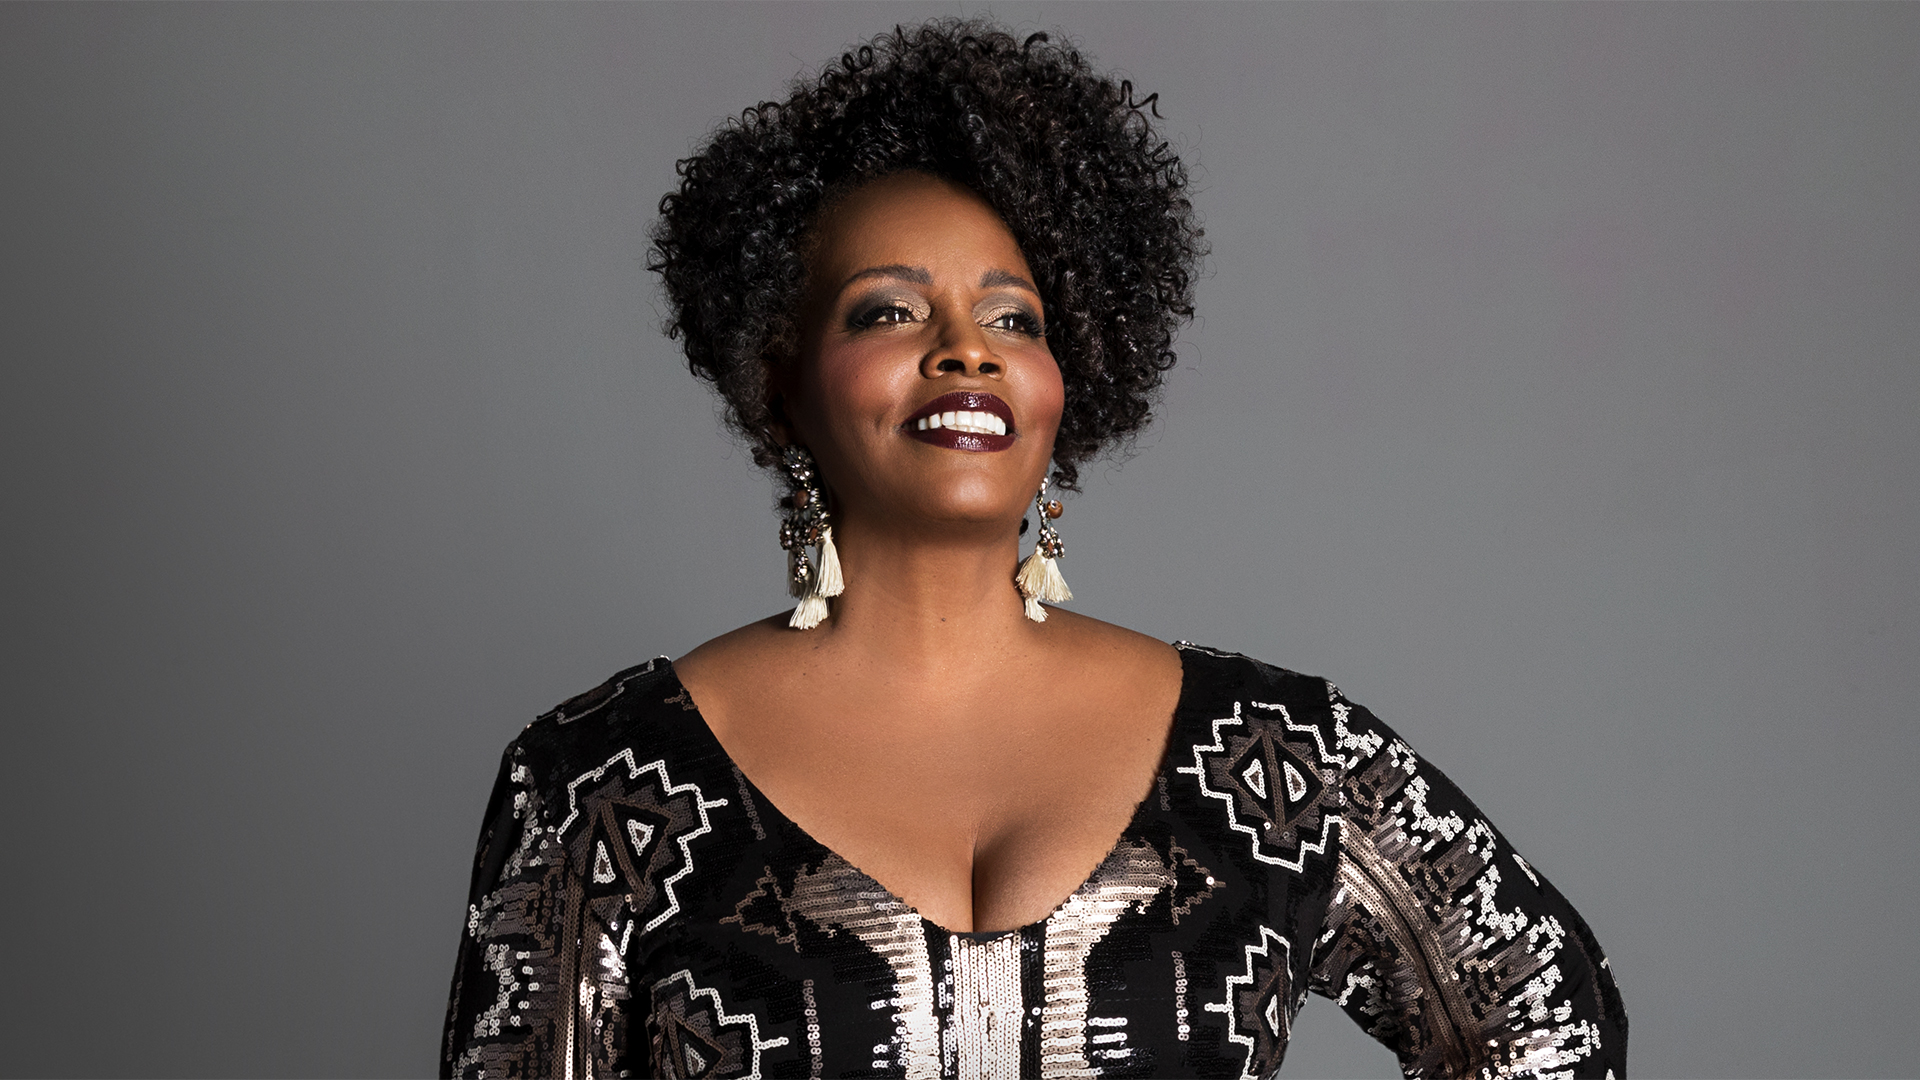 Dianne Reeves. Photo by Piper Ferguson.